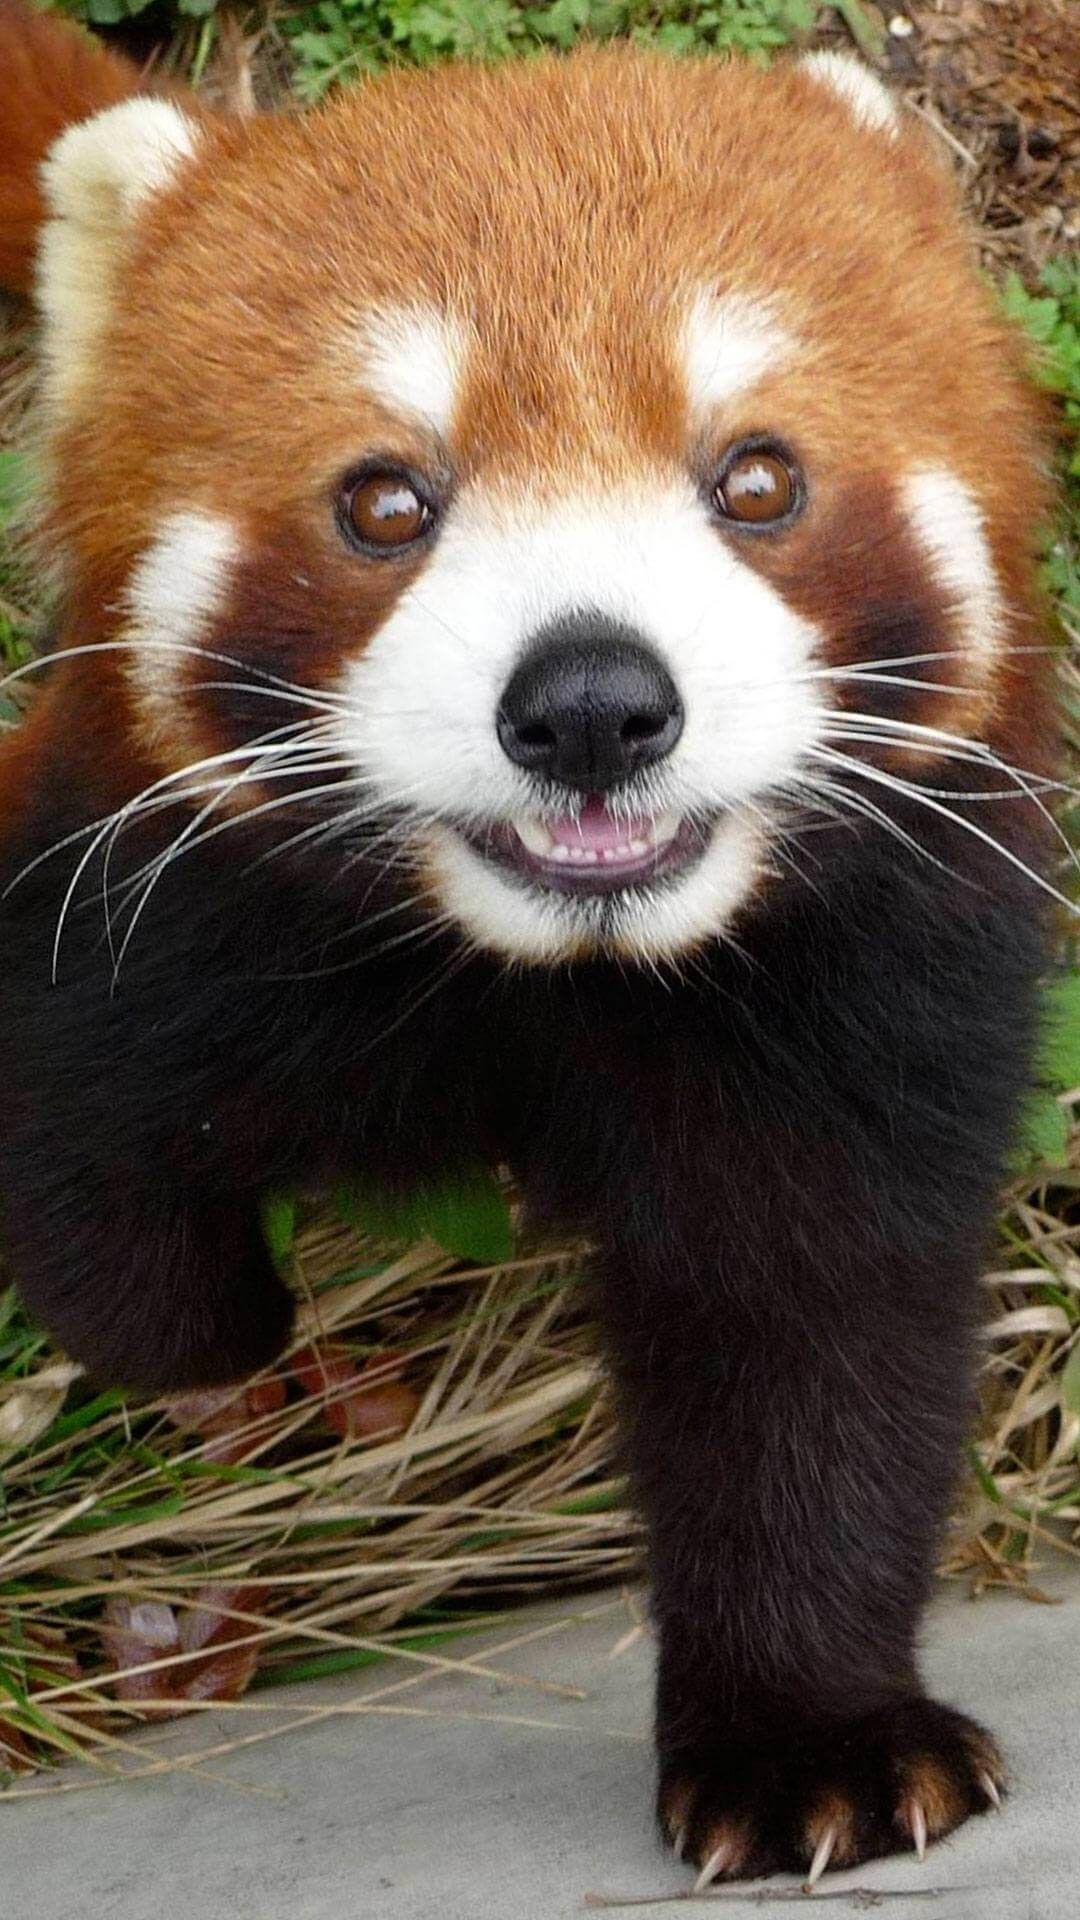 1080x1920 Cute Red Panda Wallpaper iPhone HD